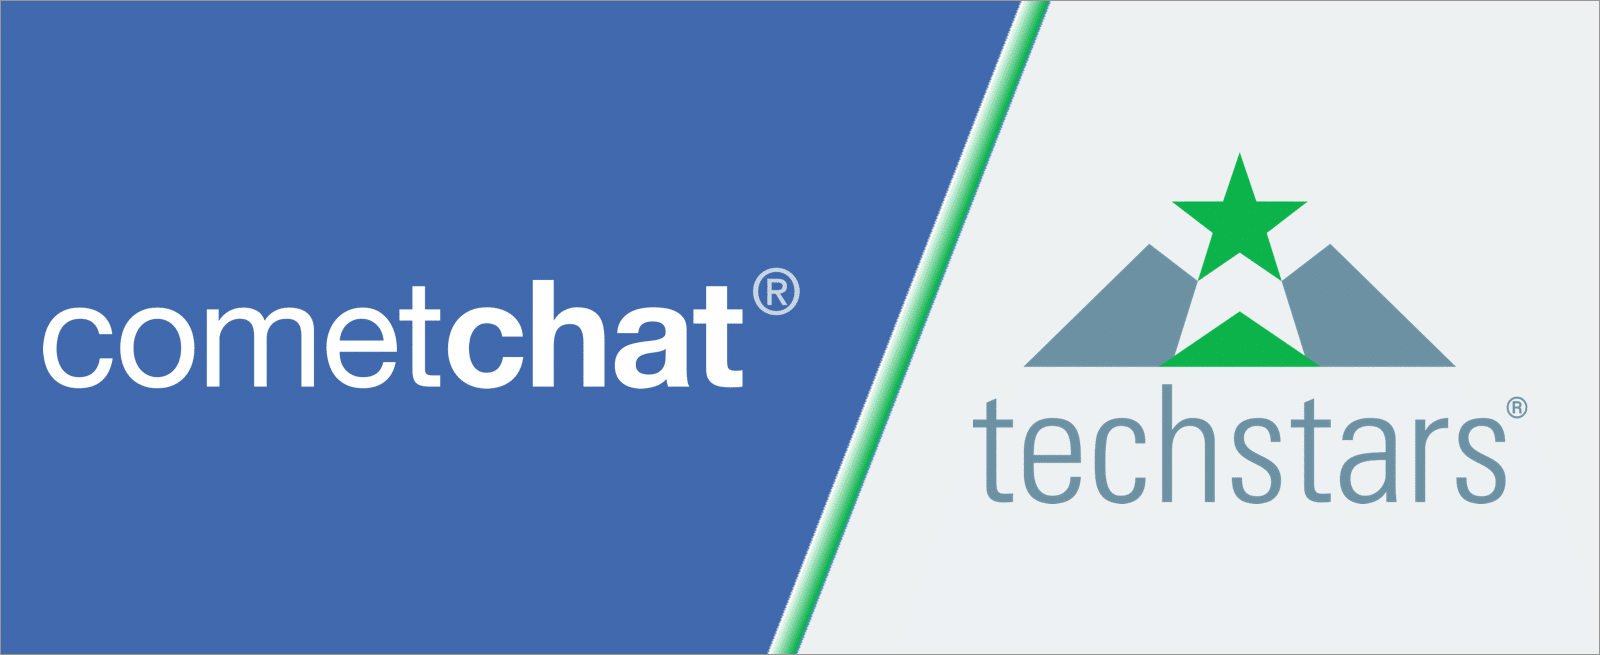 /joining-techstars-cometchat-pro-and-the-road-ahead-310669920df5 feature image